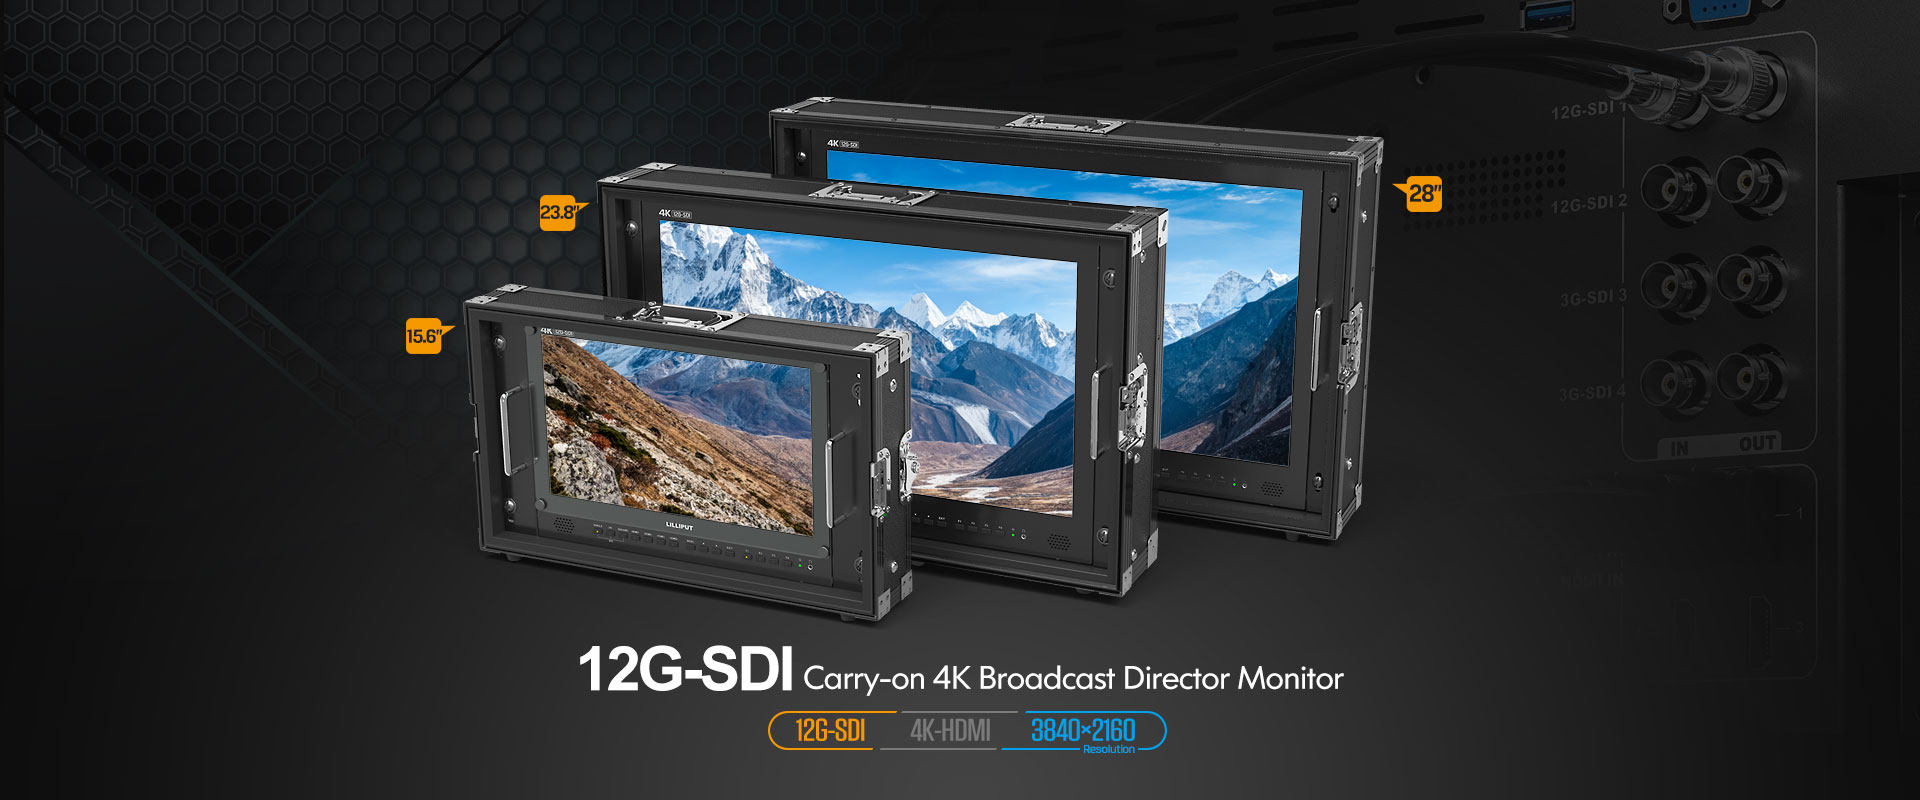 12g-sdi-monitors